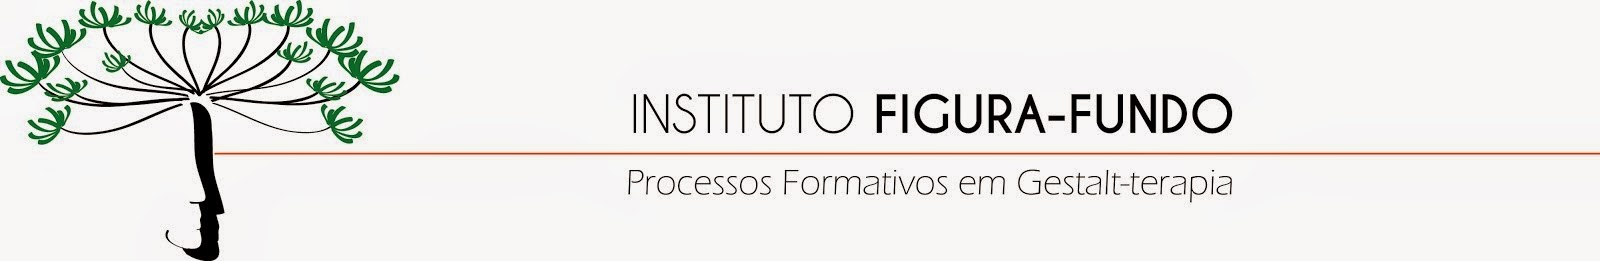 Instituto Figura-Fundo